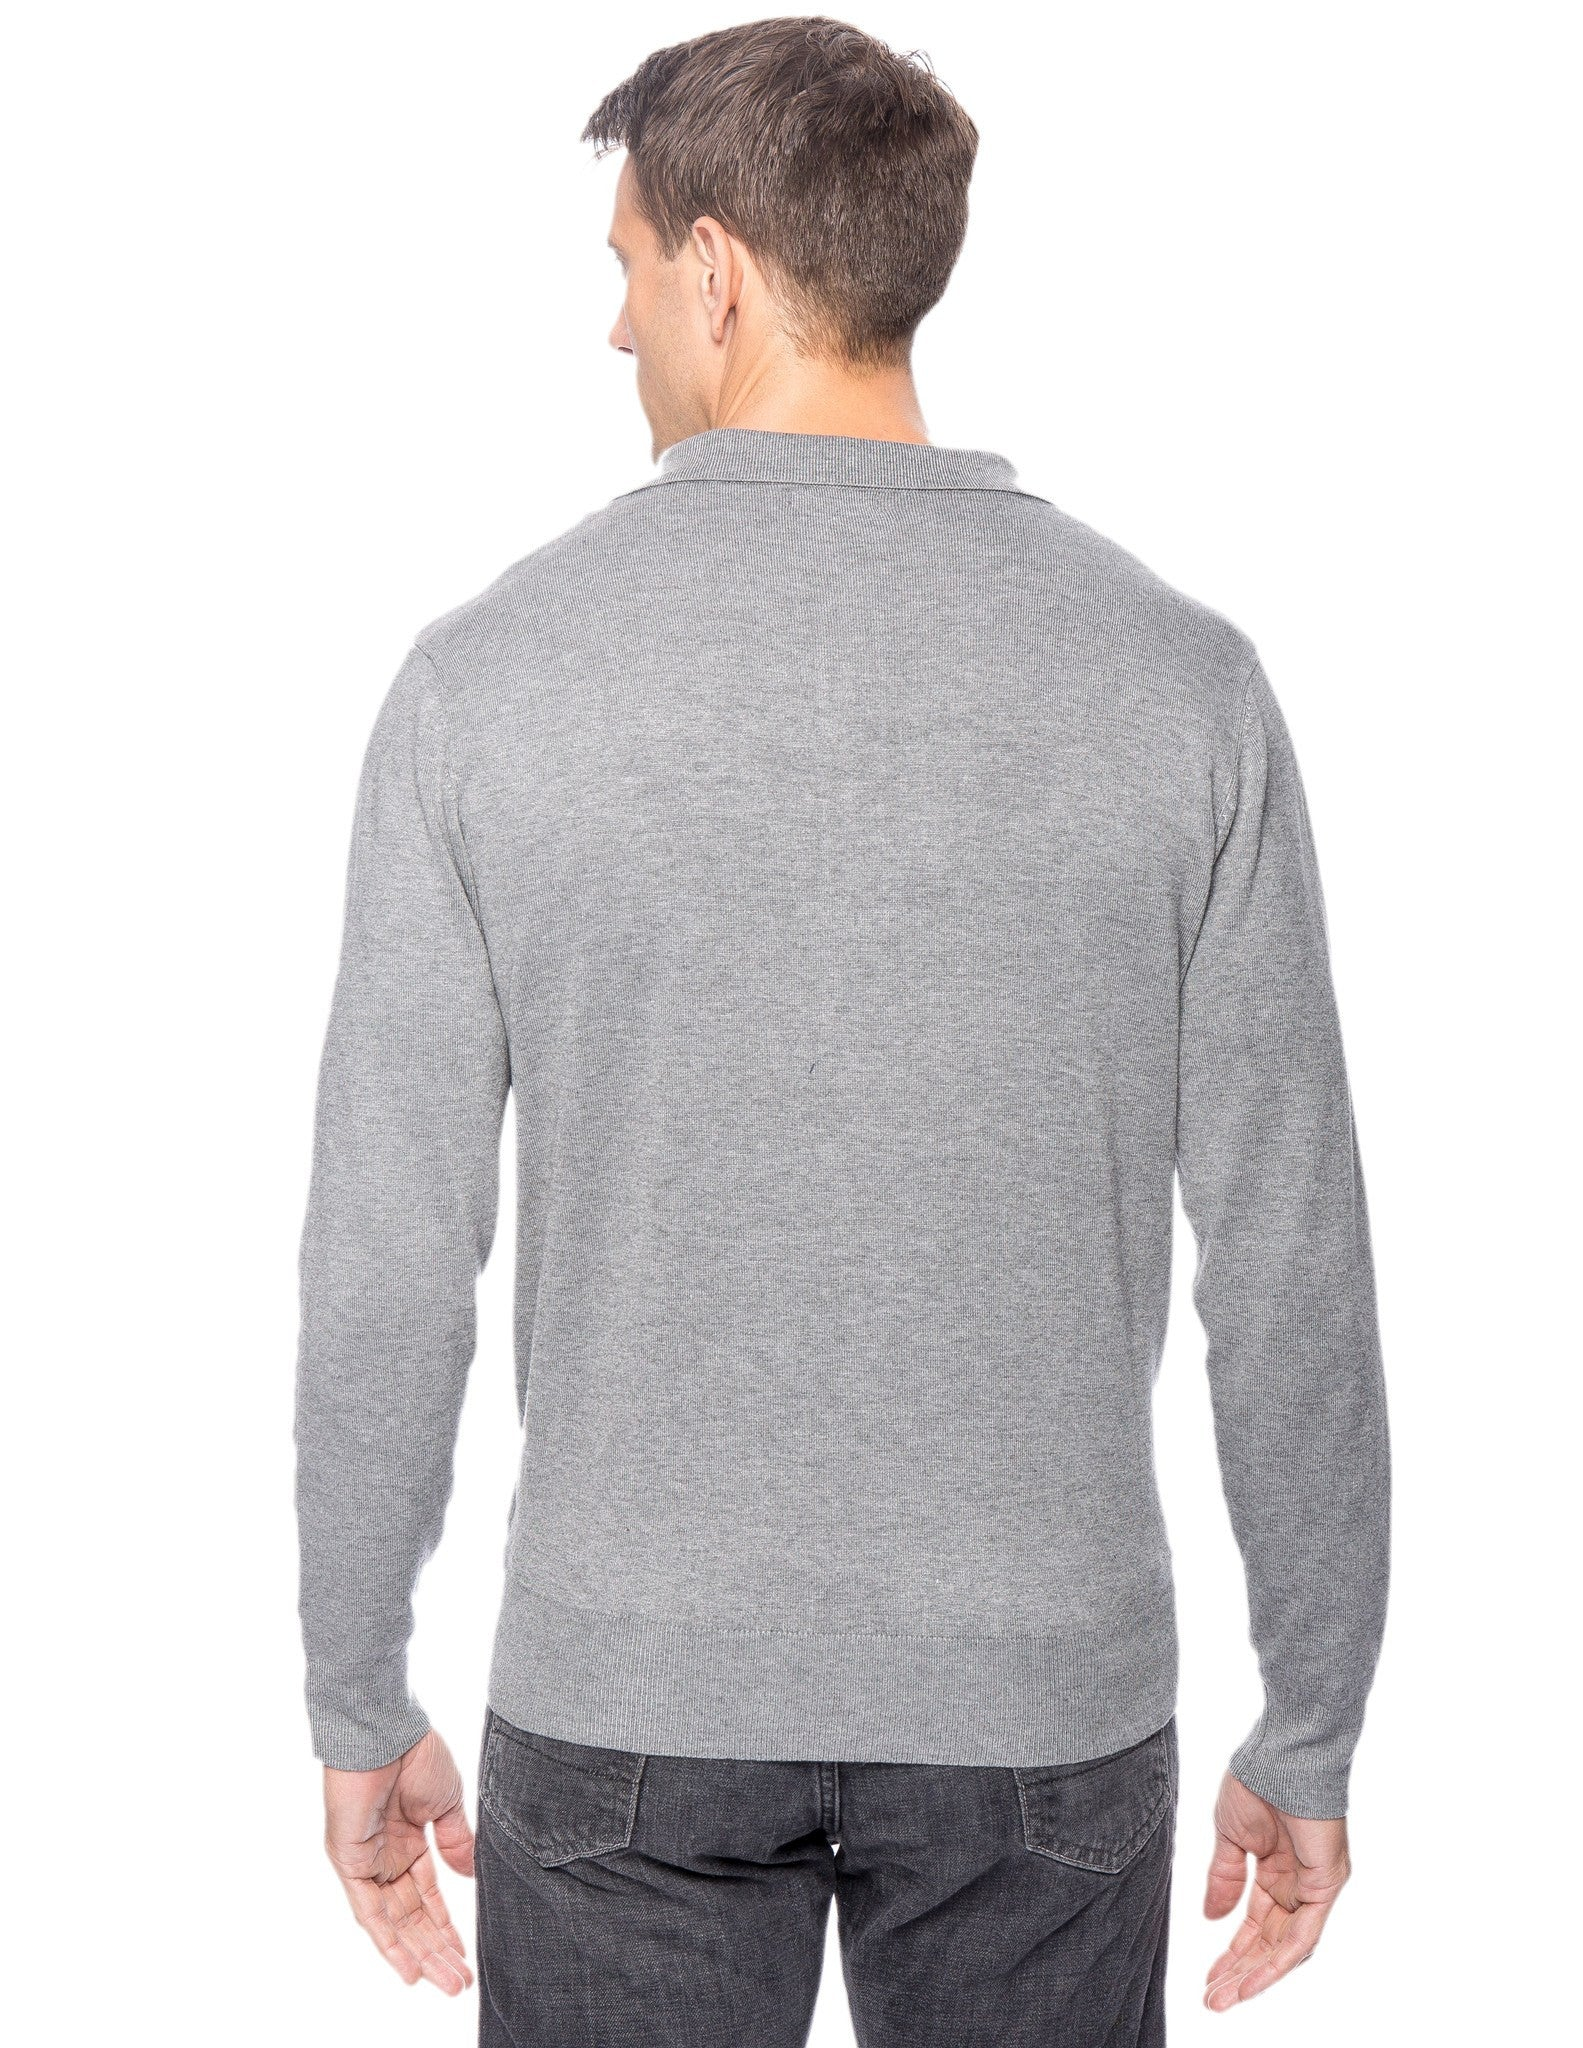 Tocco Reale Men's Classic Knit Long Sleeve Polo Sweater - Heather Grey